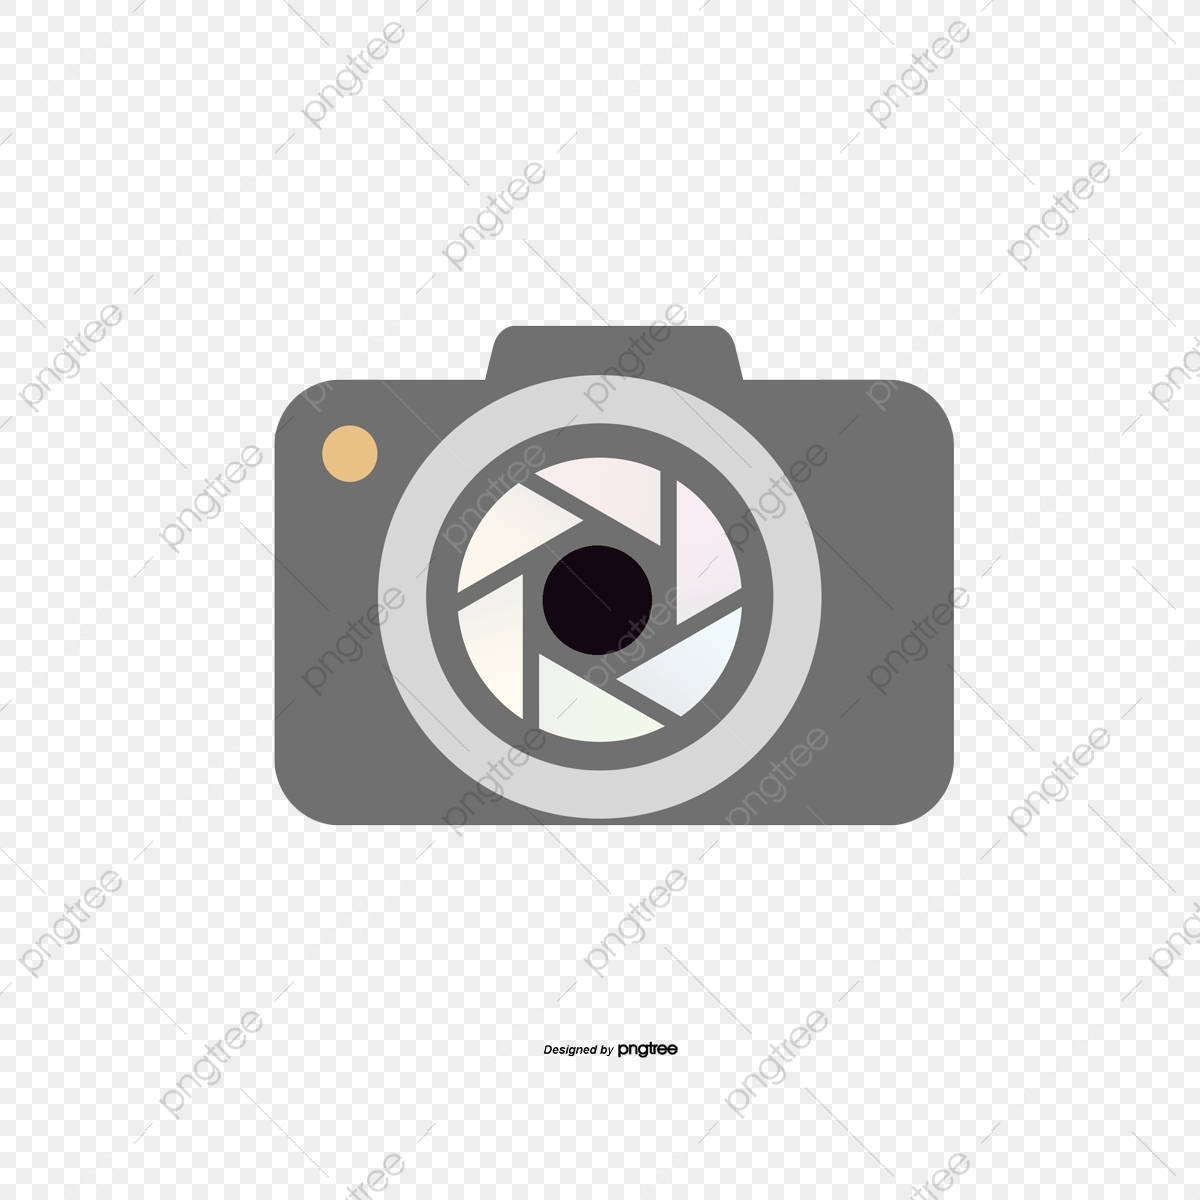 Vector Camera Logo Free Logo Design Template Golden Business Logo Company Culture Png Transparent Clipart Image And Psd File For Free Download